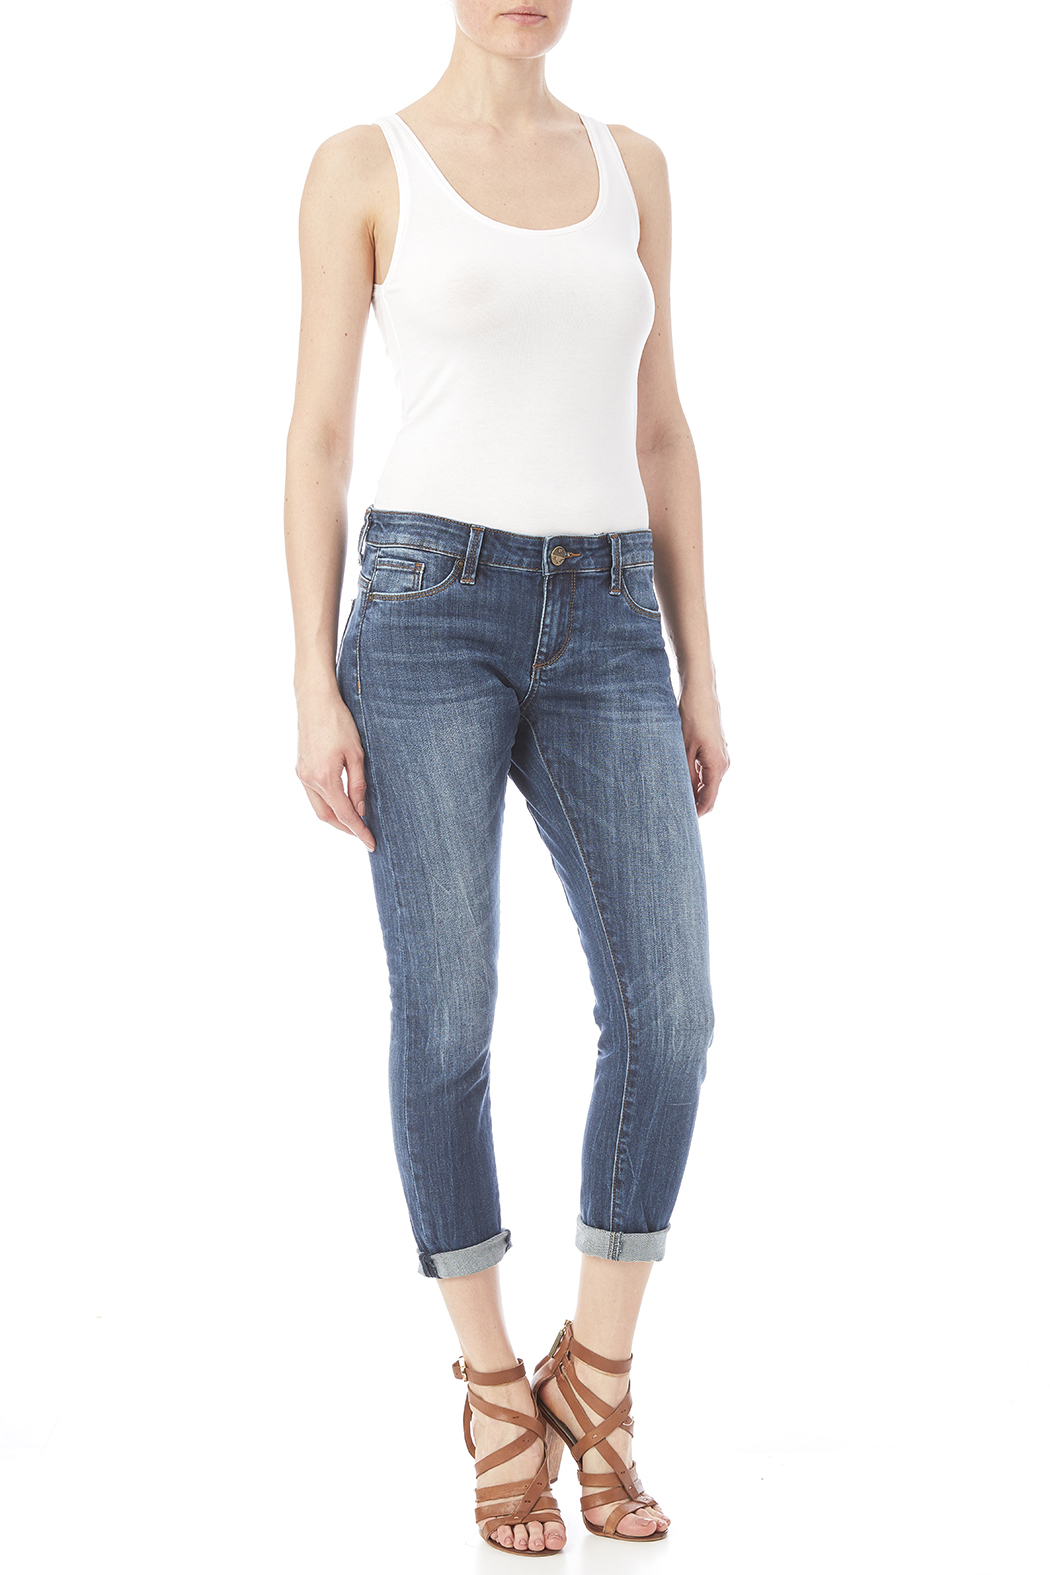 Kut from the Kloth Slim Boyfriend Jean - Front Full Image